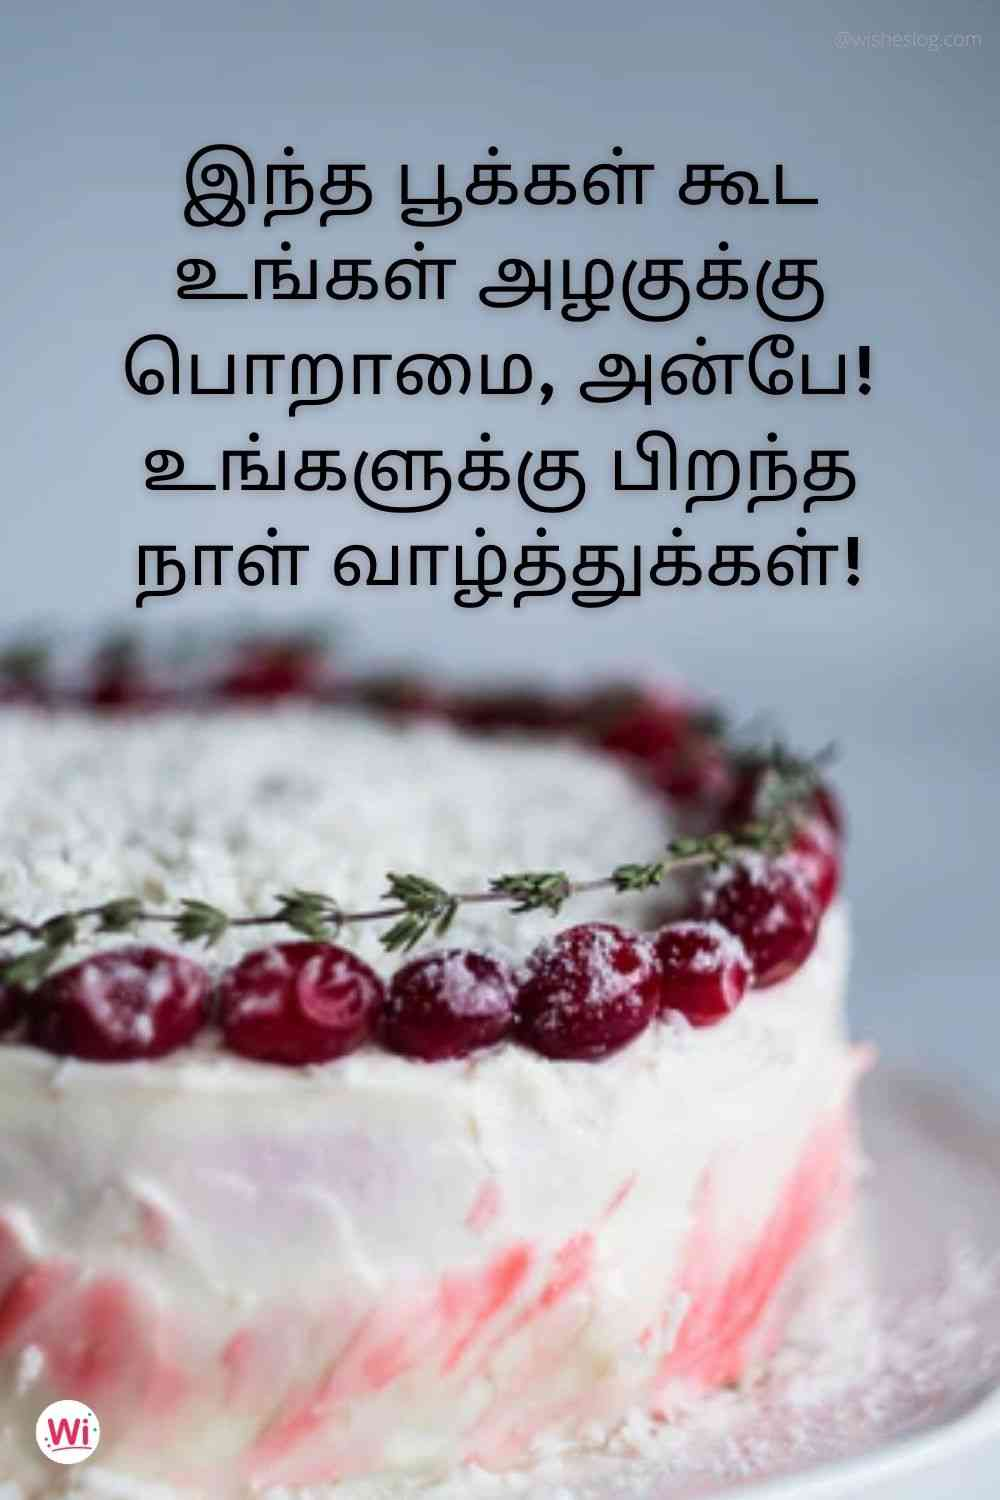 birthday wishes quotes tamil for girlfriend